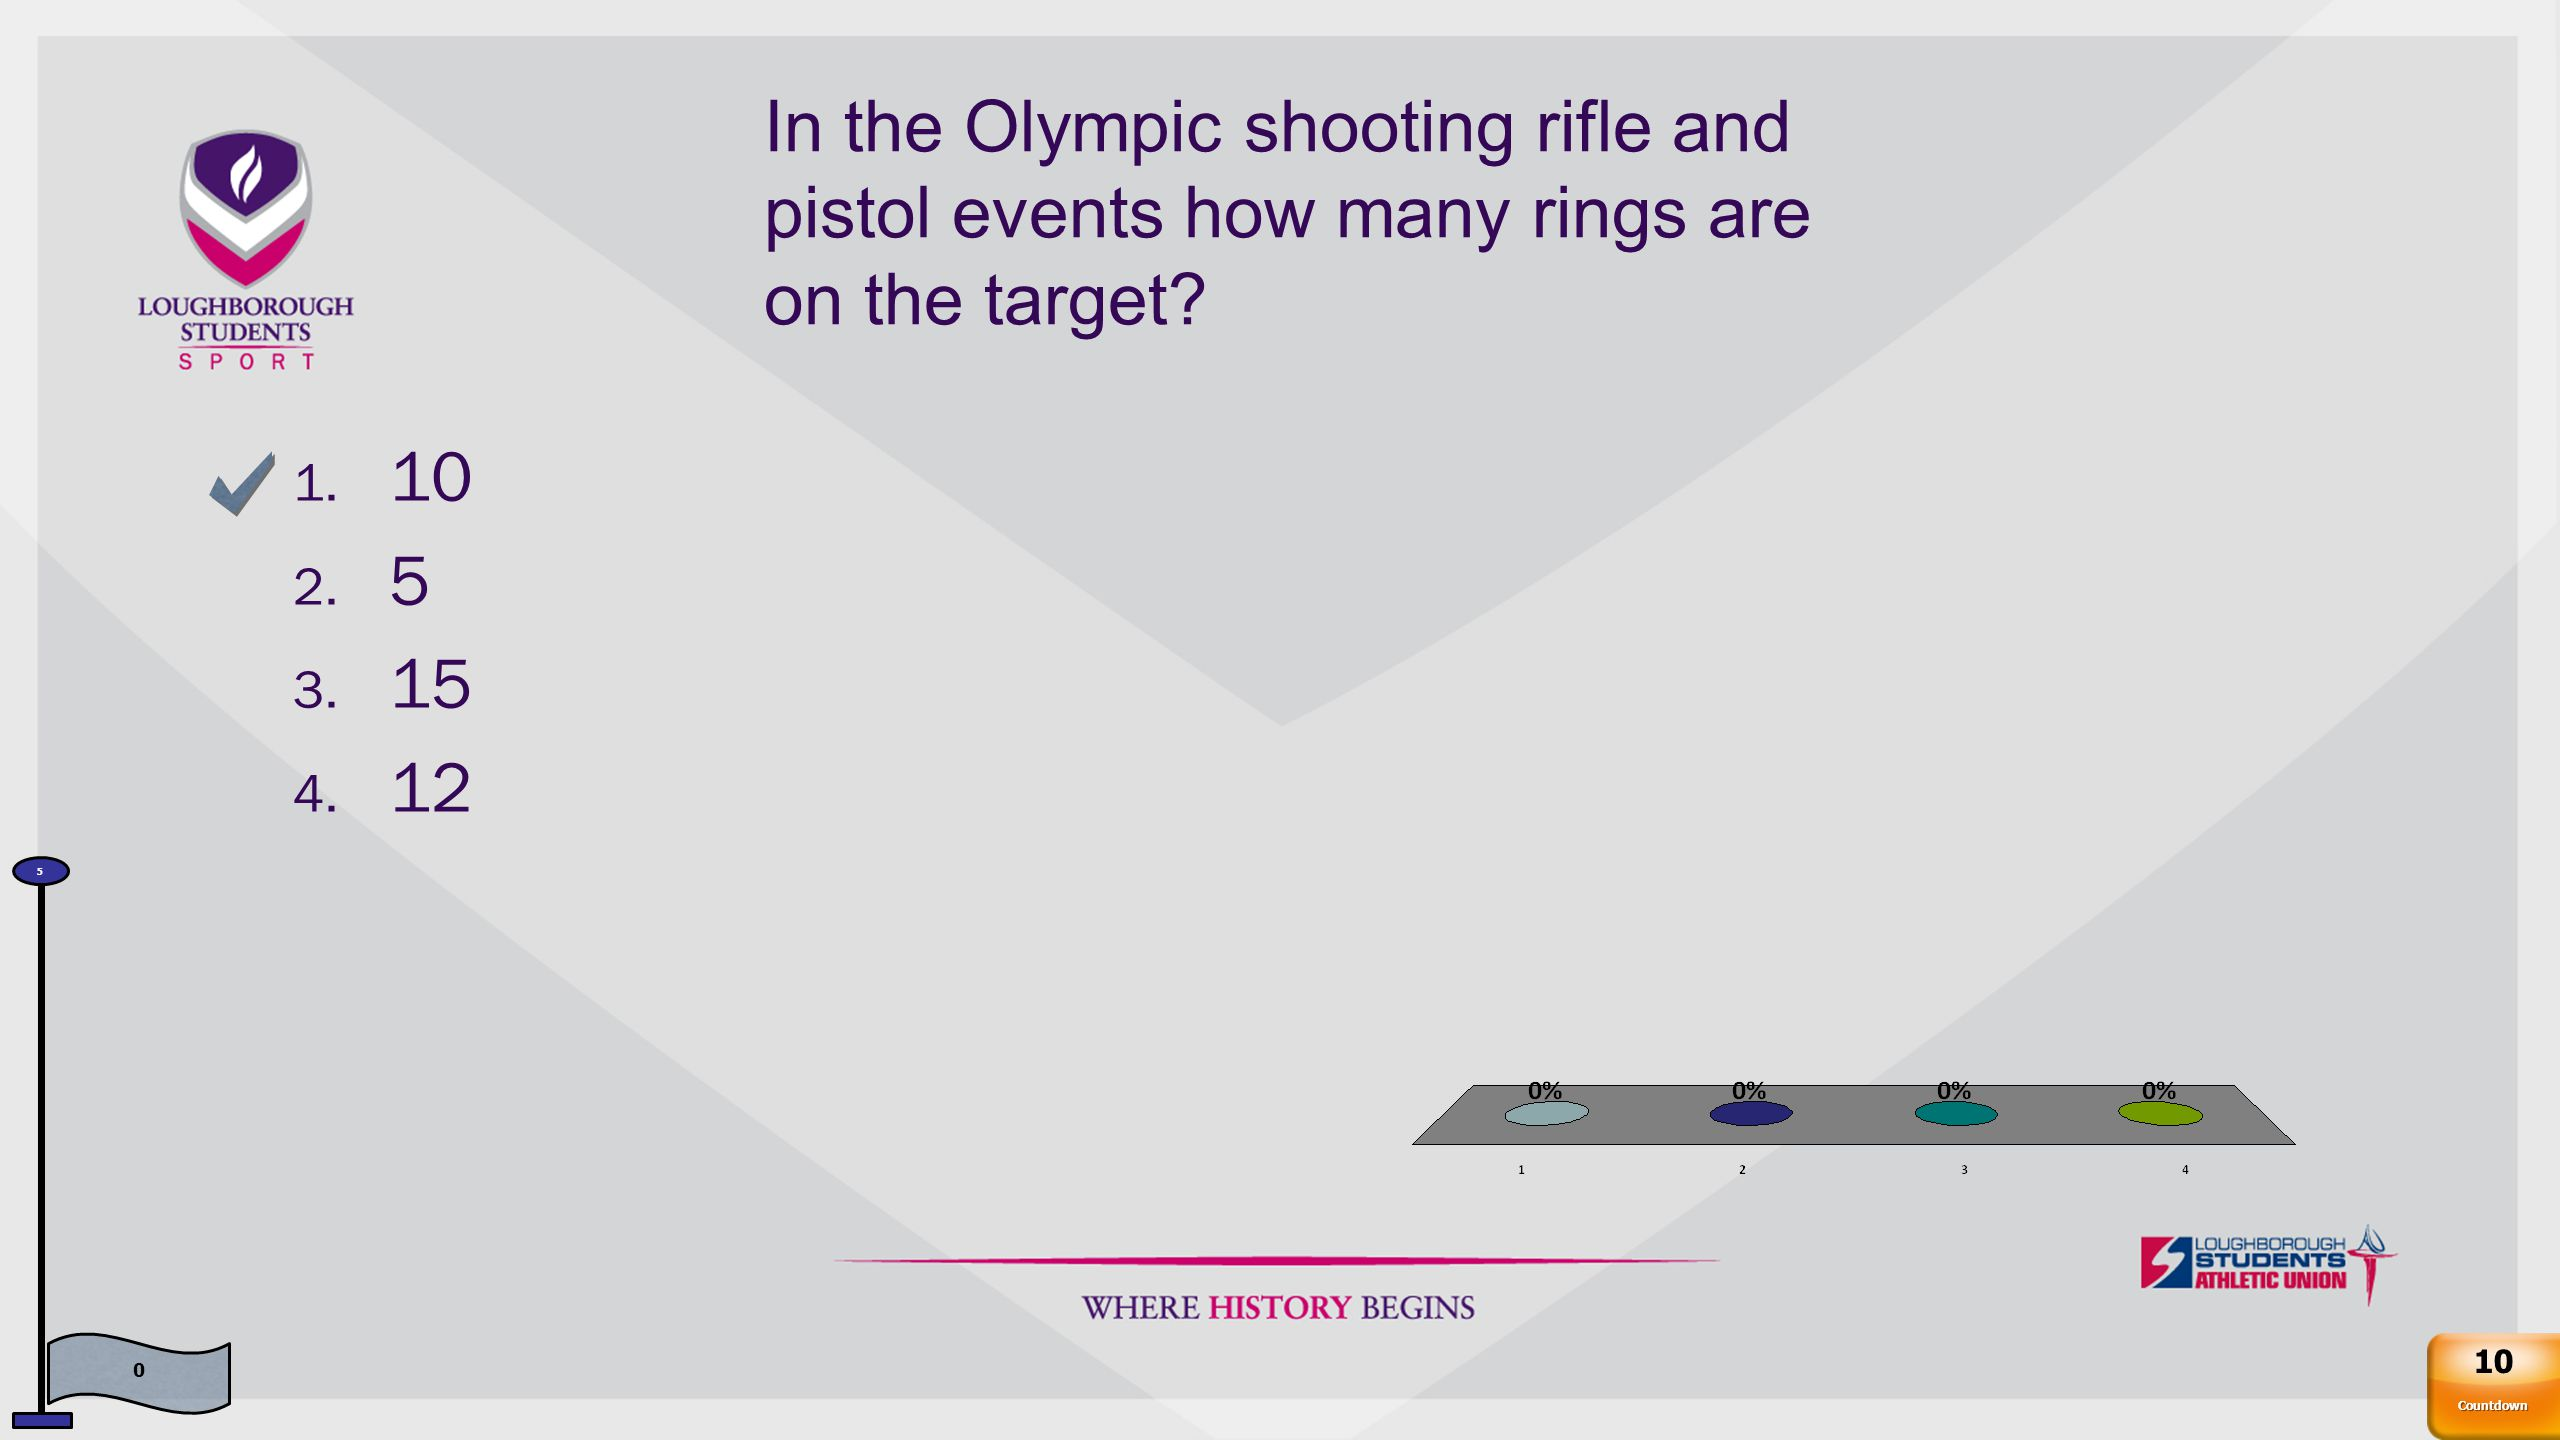 In the Olympic shooting rifle and pistol events how many rings are on the target.